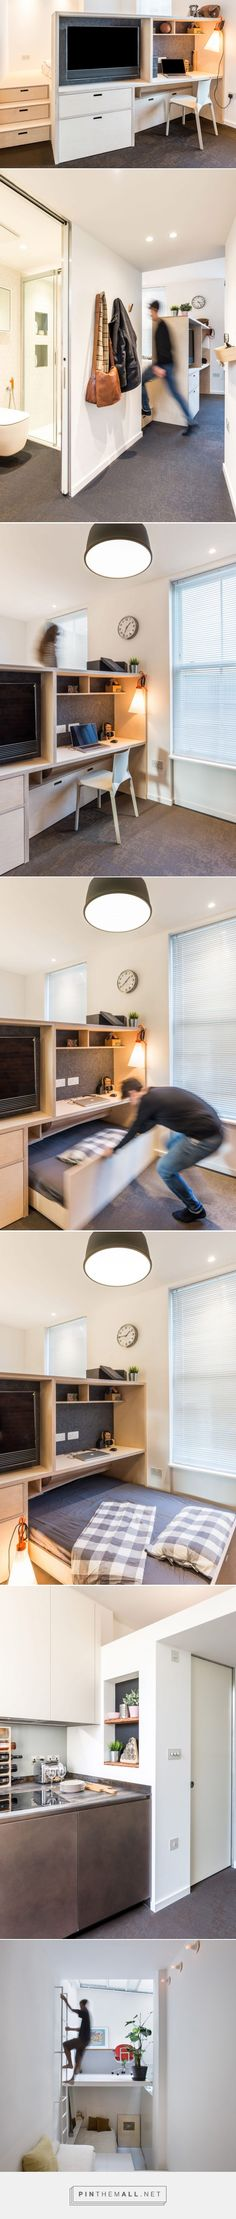 CIAO adds space-saving custom furniture to London micro apartment - created via https://pinthemall.net